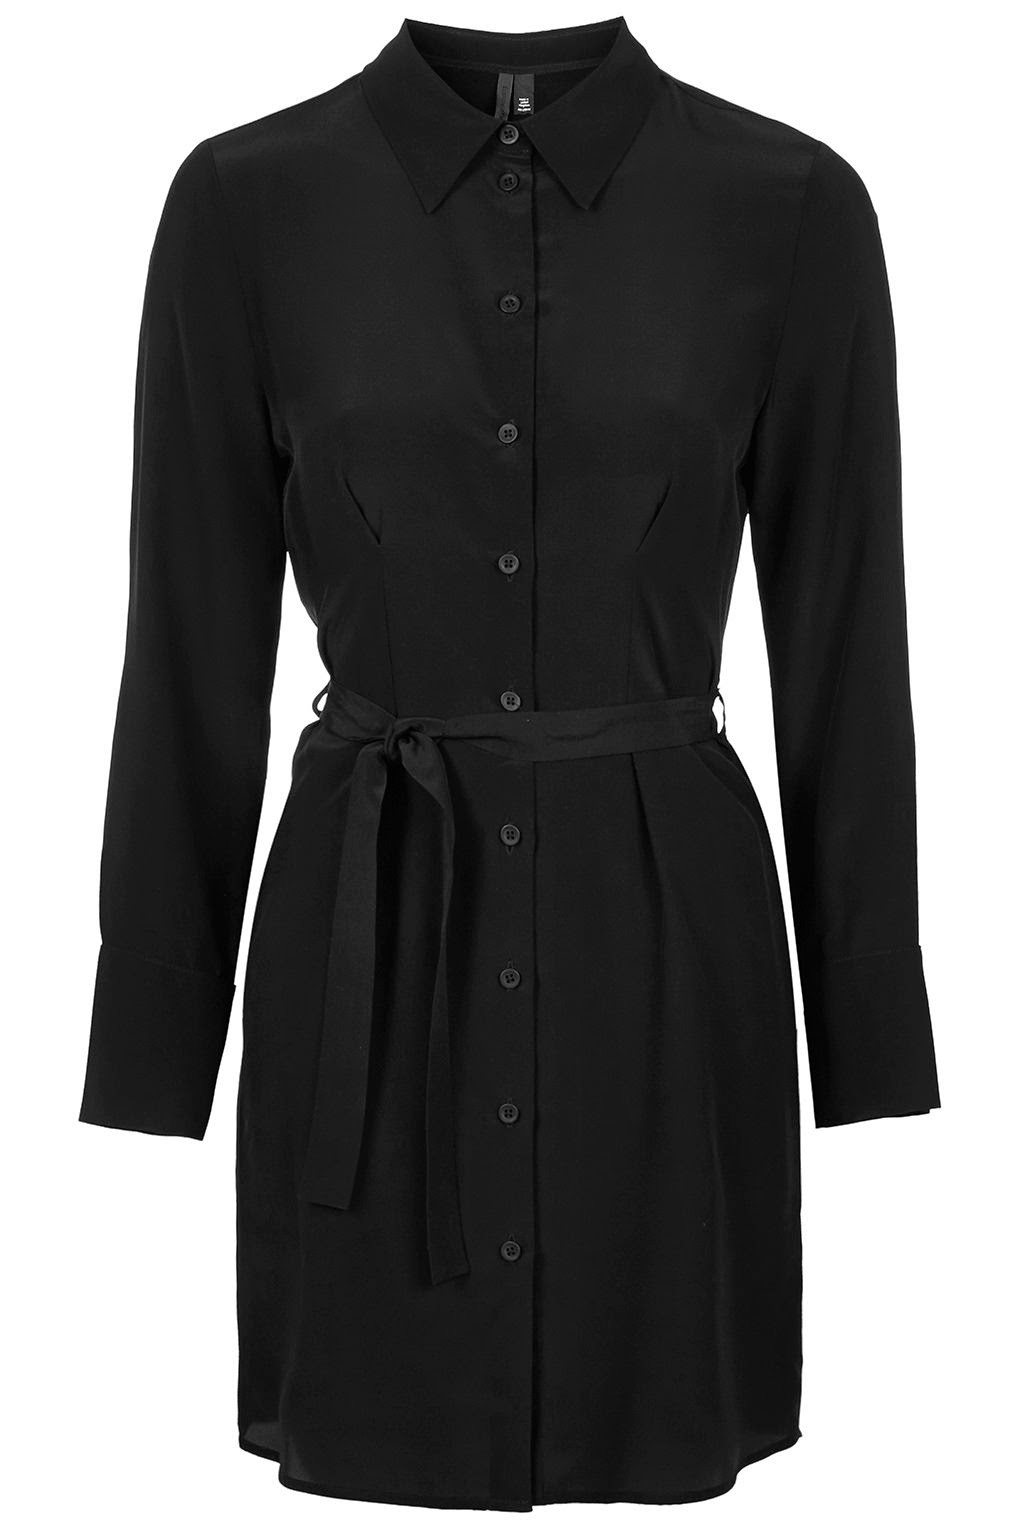 silk black shirt dress, topshop boutique shirt dress,